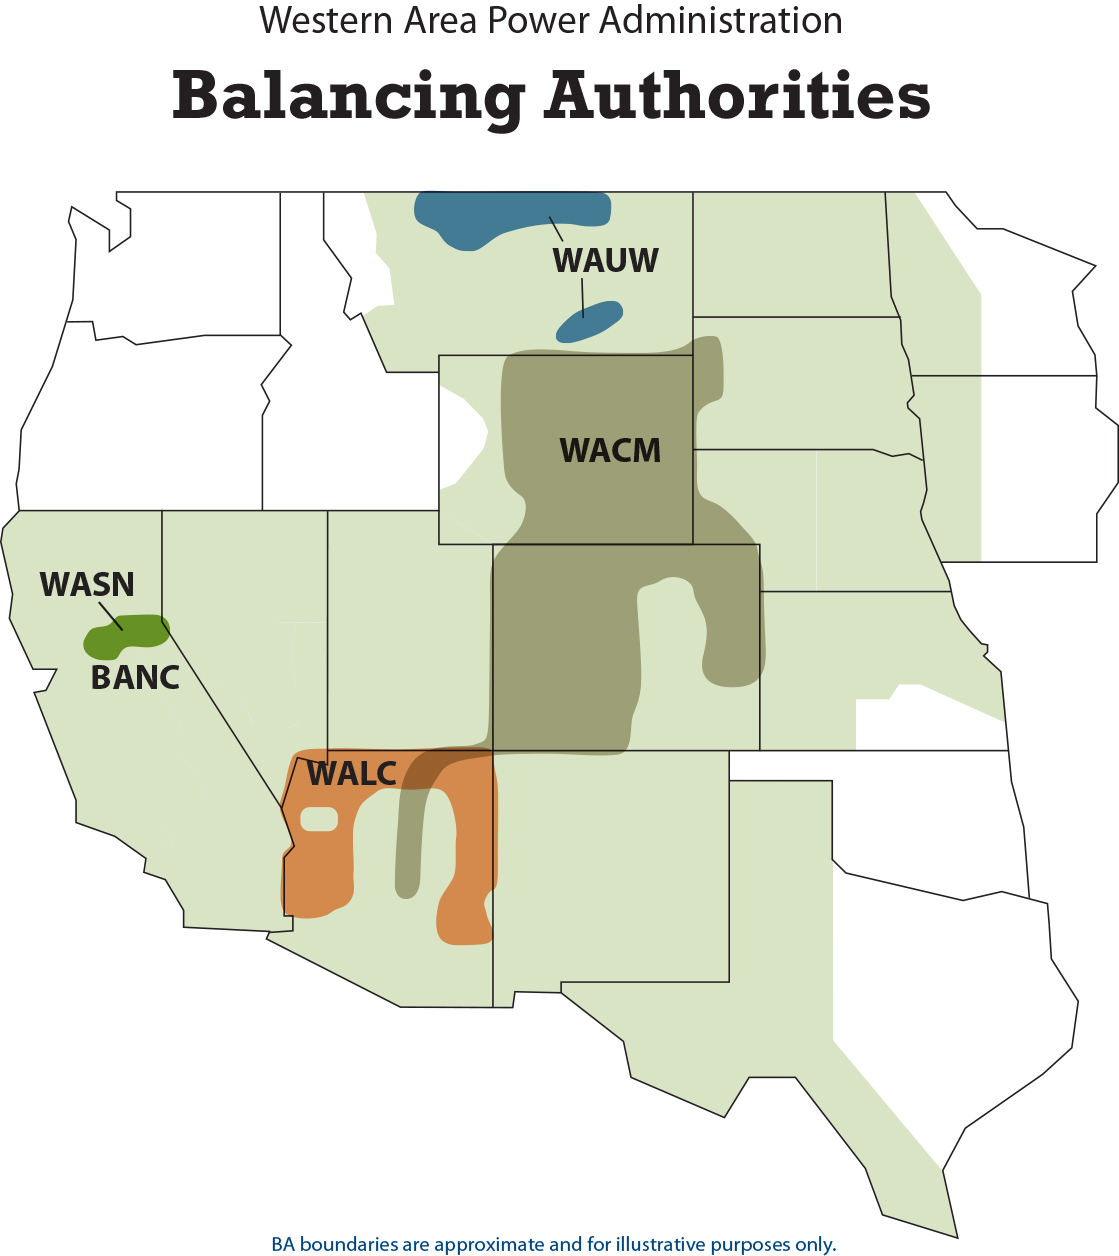 WAPA Balancing Authorities